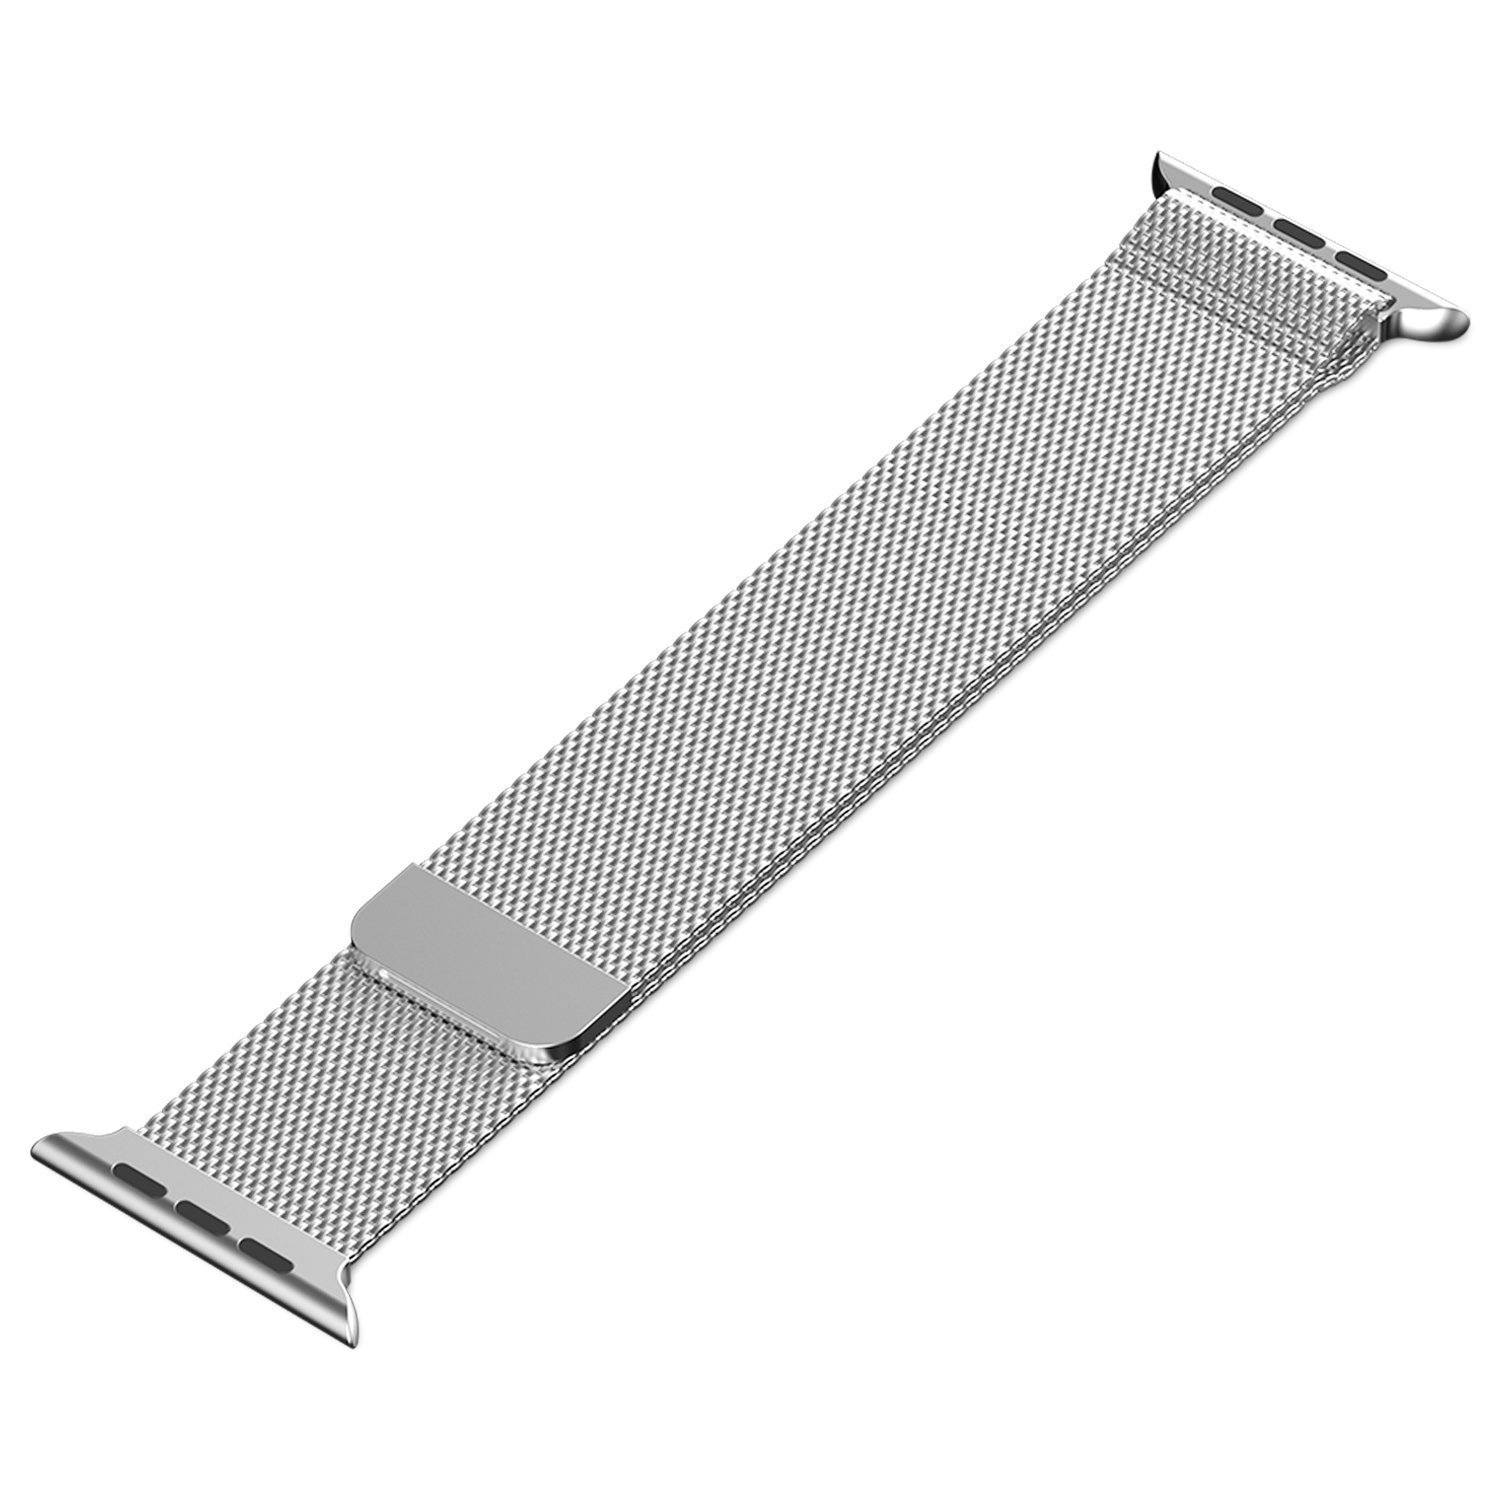 Apple Watch Band, iWatch Band, AsiaFly® 42mm Milanese Loop Stainless Steel Bracelet Strap Band for Apple Watch 42mm All Models Silver